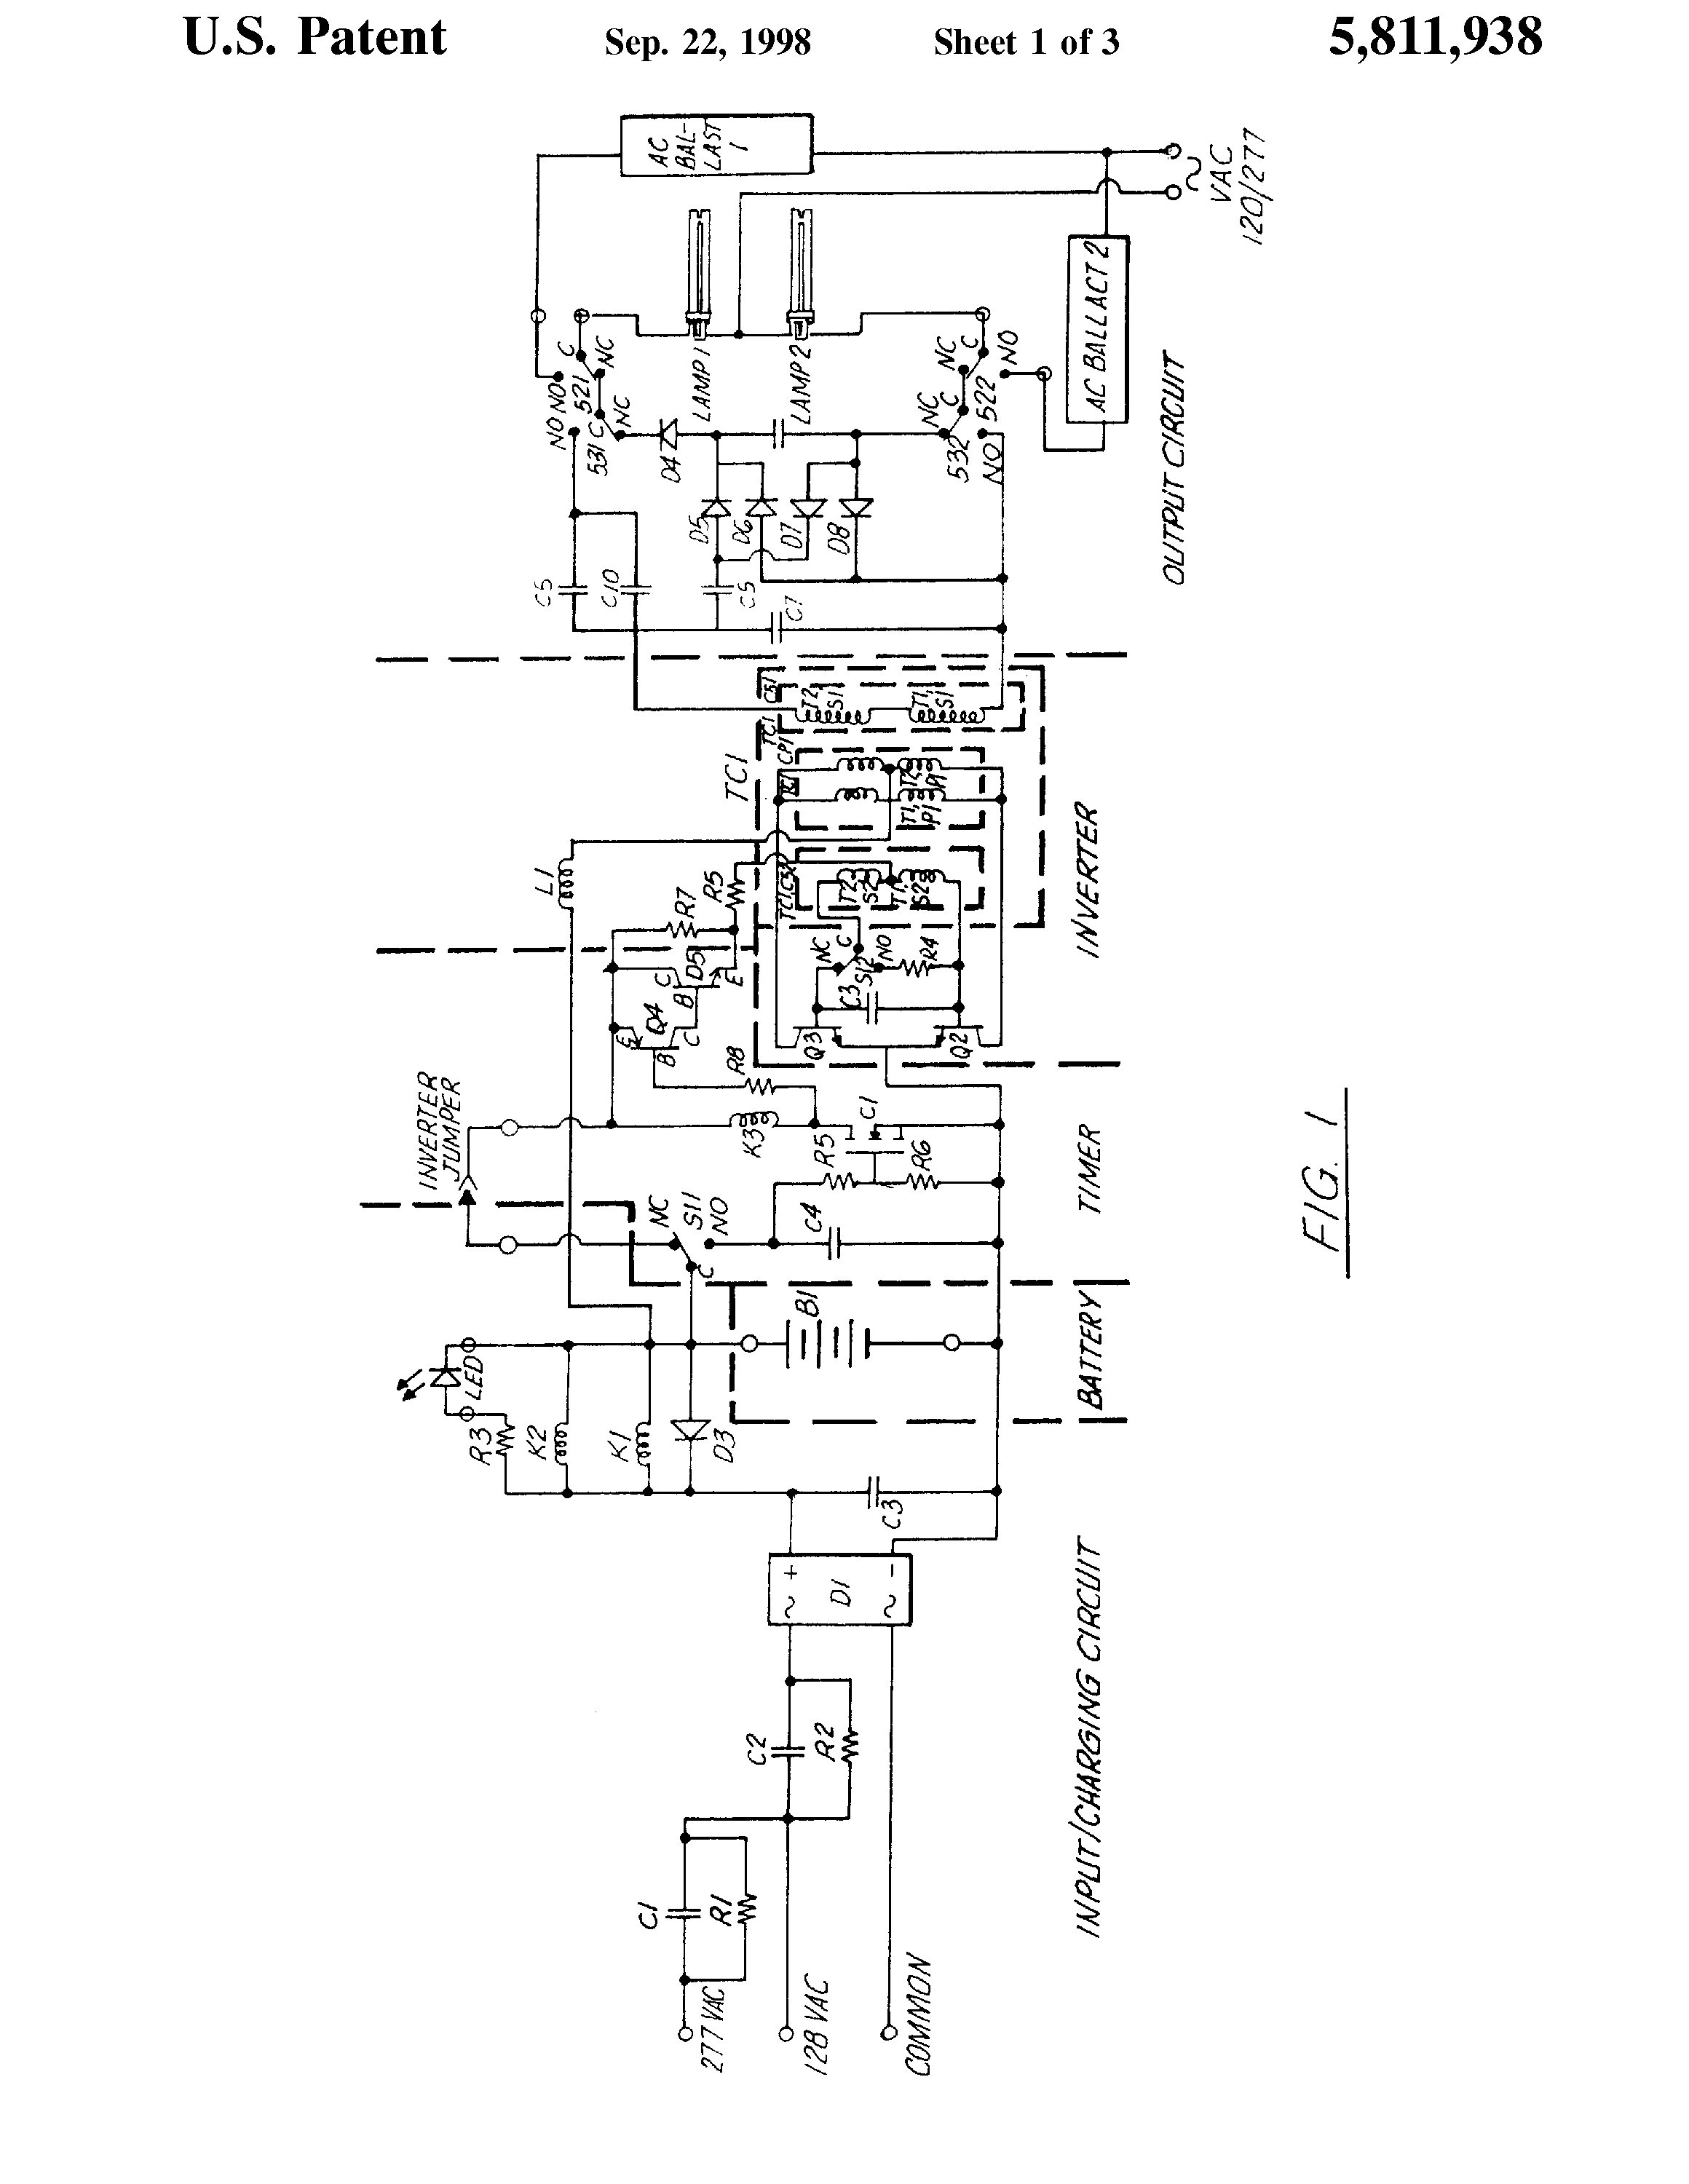 Fci Lcd Wiring Diagram Sample